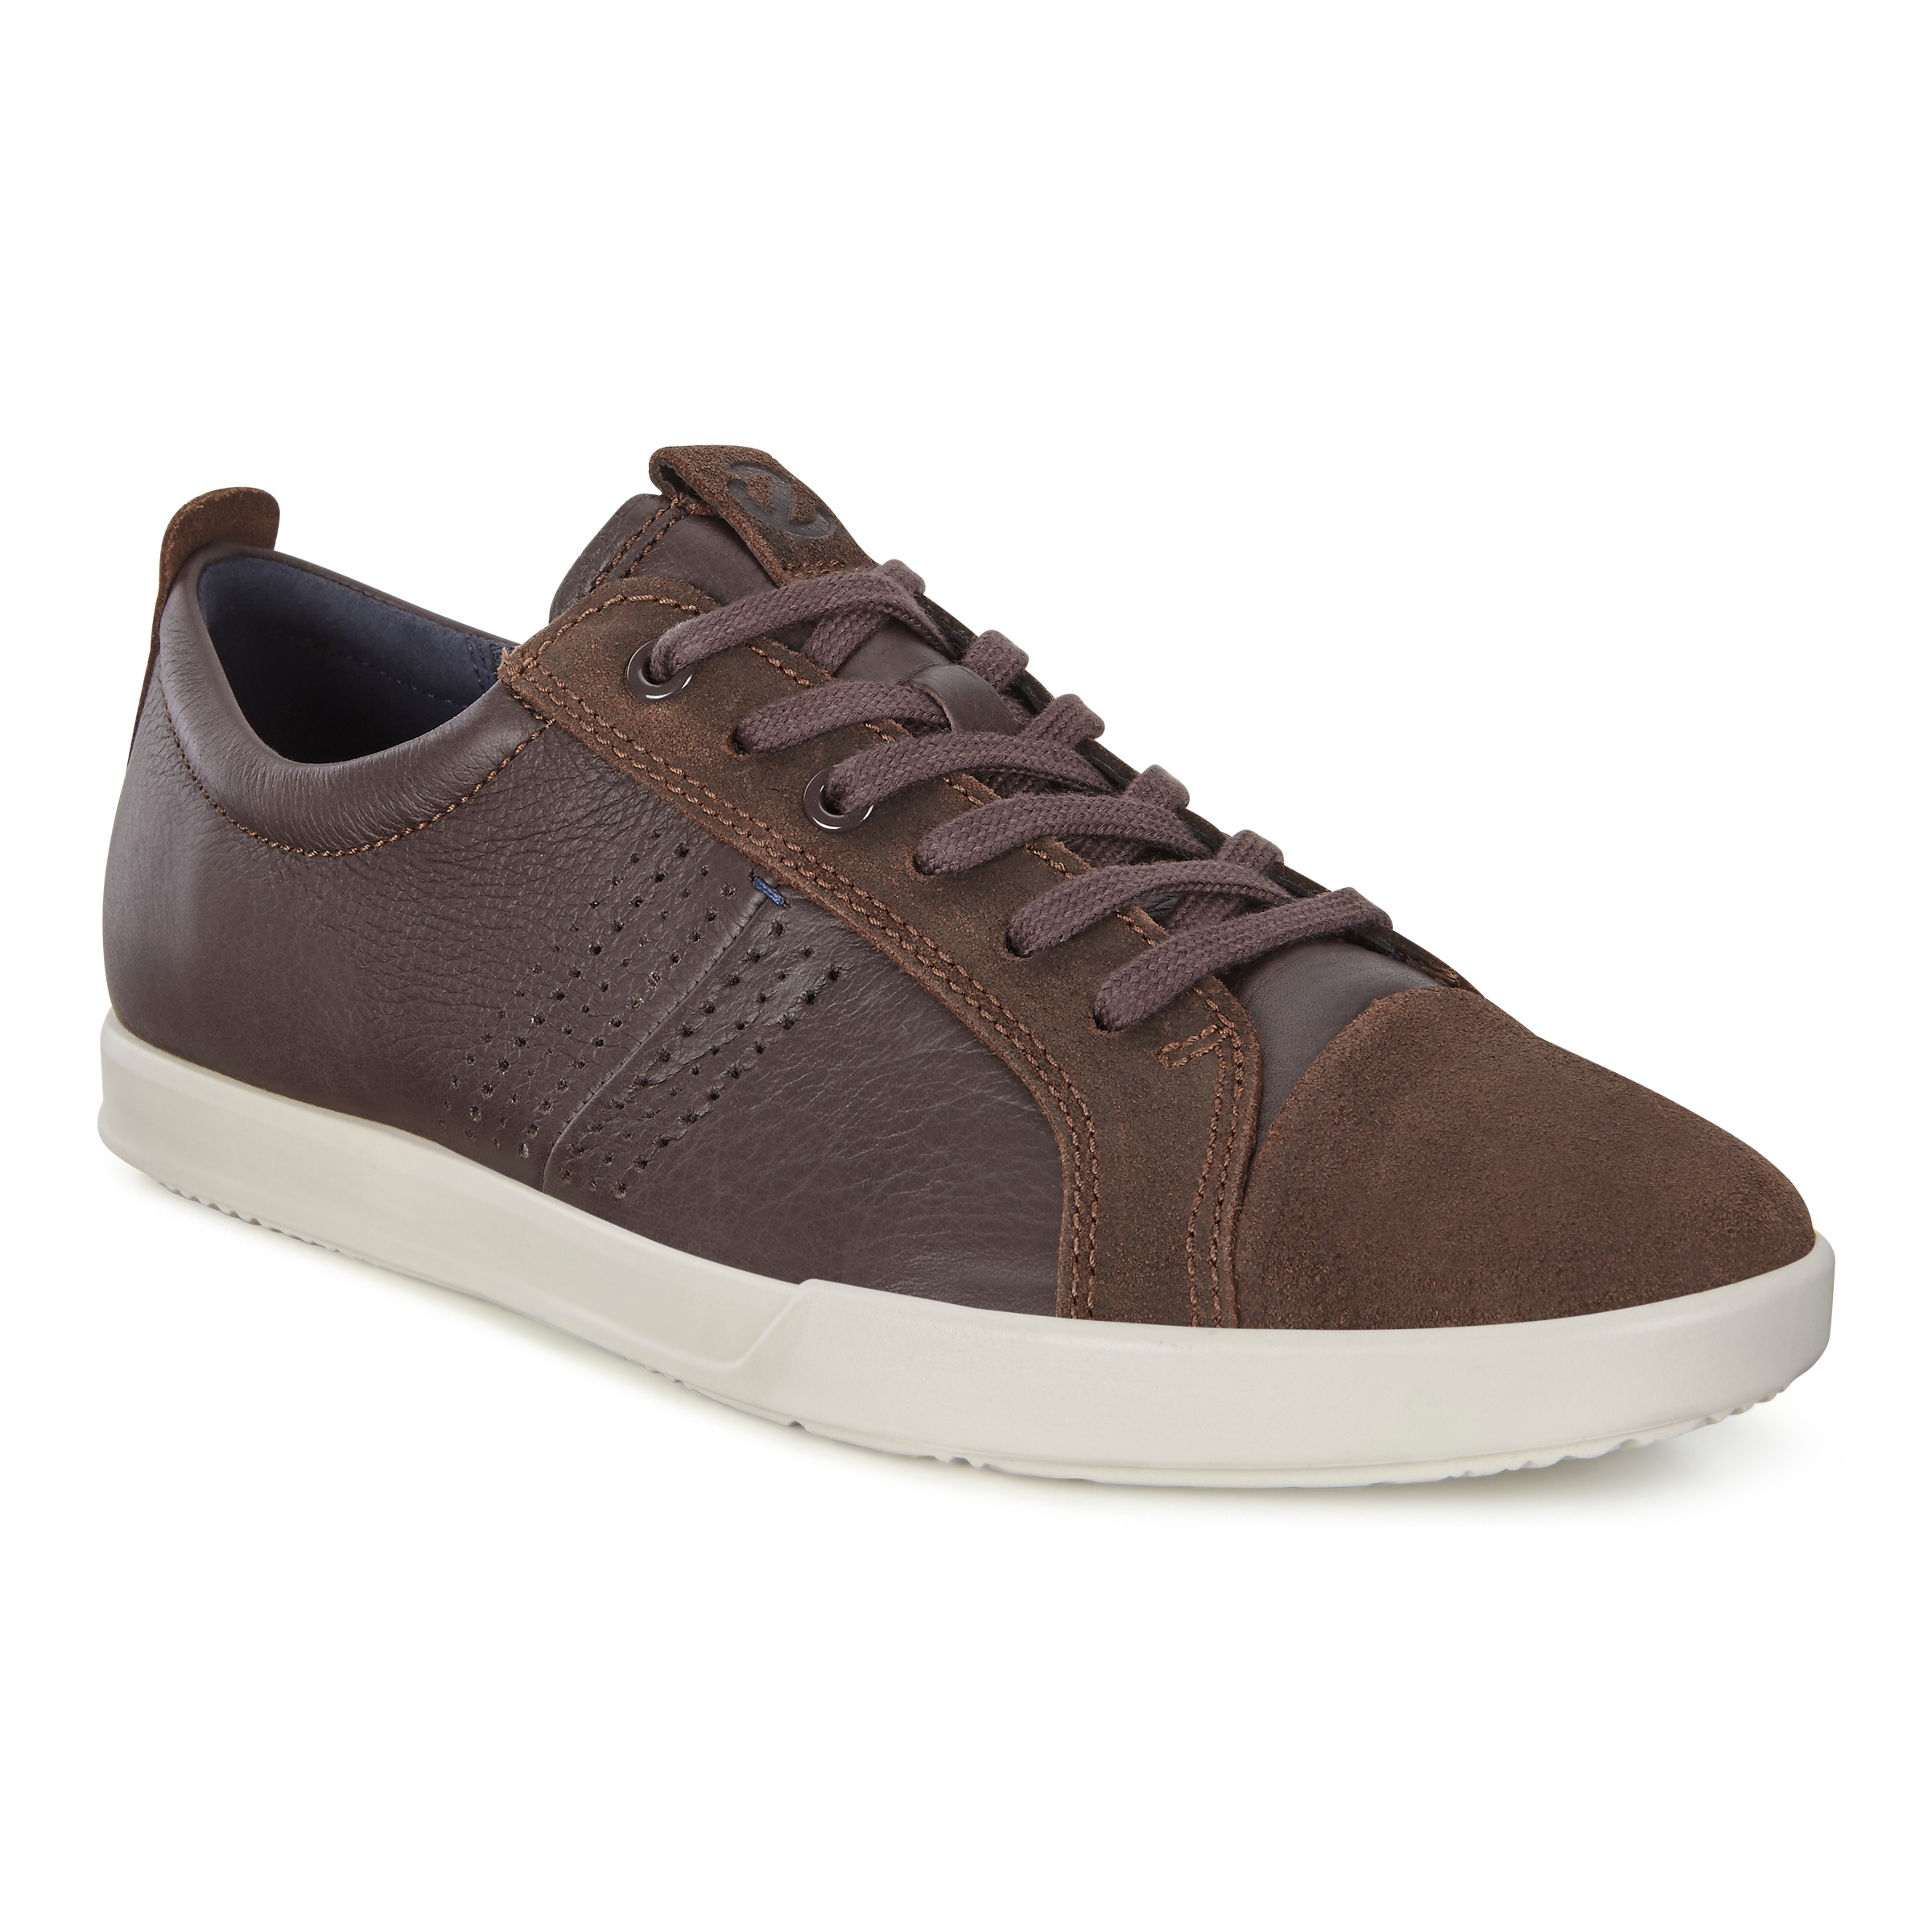 Details about ECCO COLLIN 2.0 Yak Leather Sneaker Breathable FLUIDFORM™ ECFS™ Walking Shoes